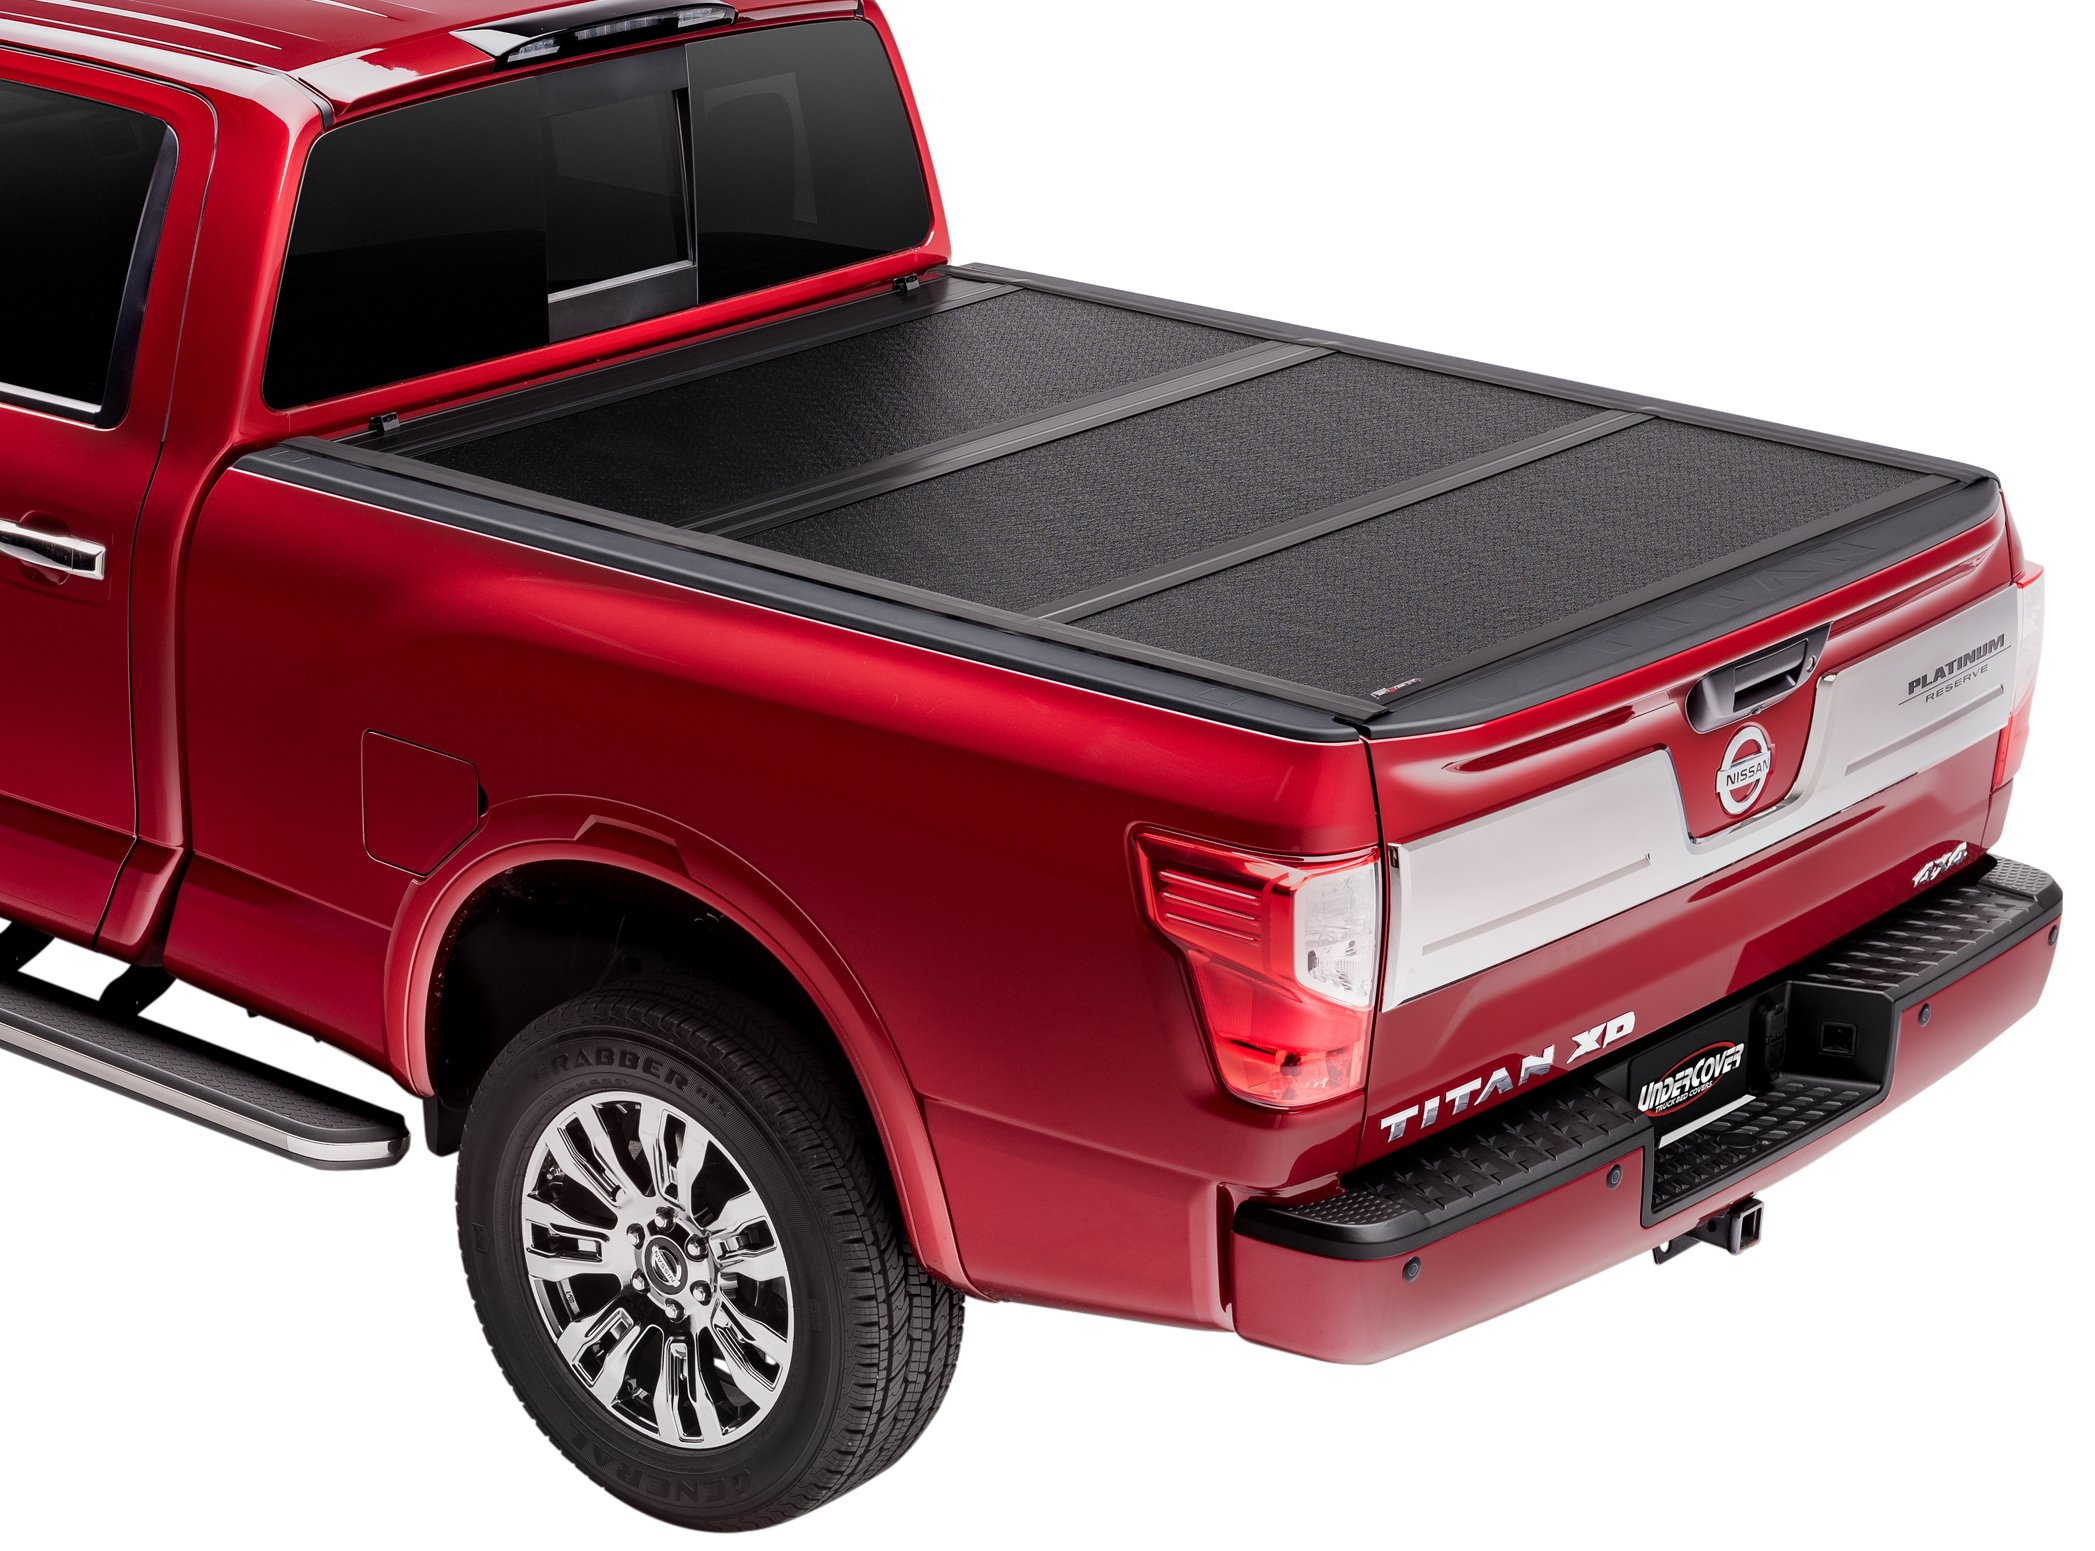 eb81481ff4f Get Quotations · Undercover FX41014 Flex Hard Folding Truck Bed Cover 2016-2017  Tacoma 5ft Short Bed Crew